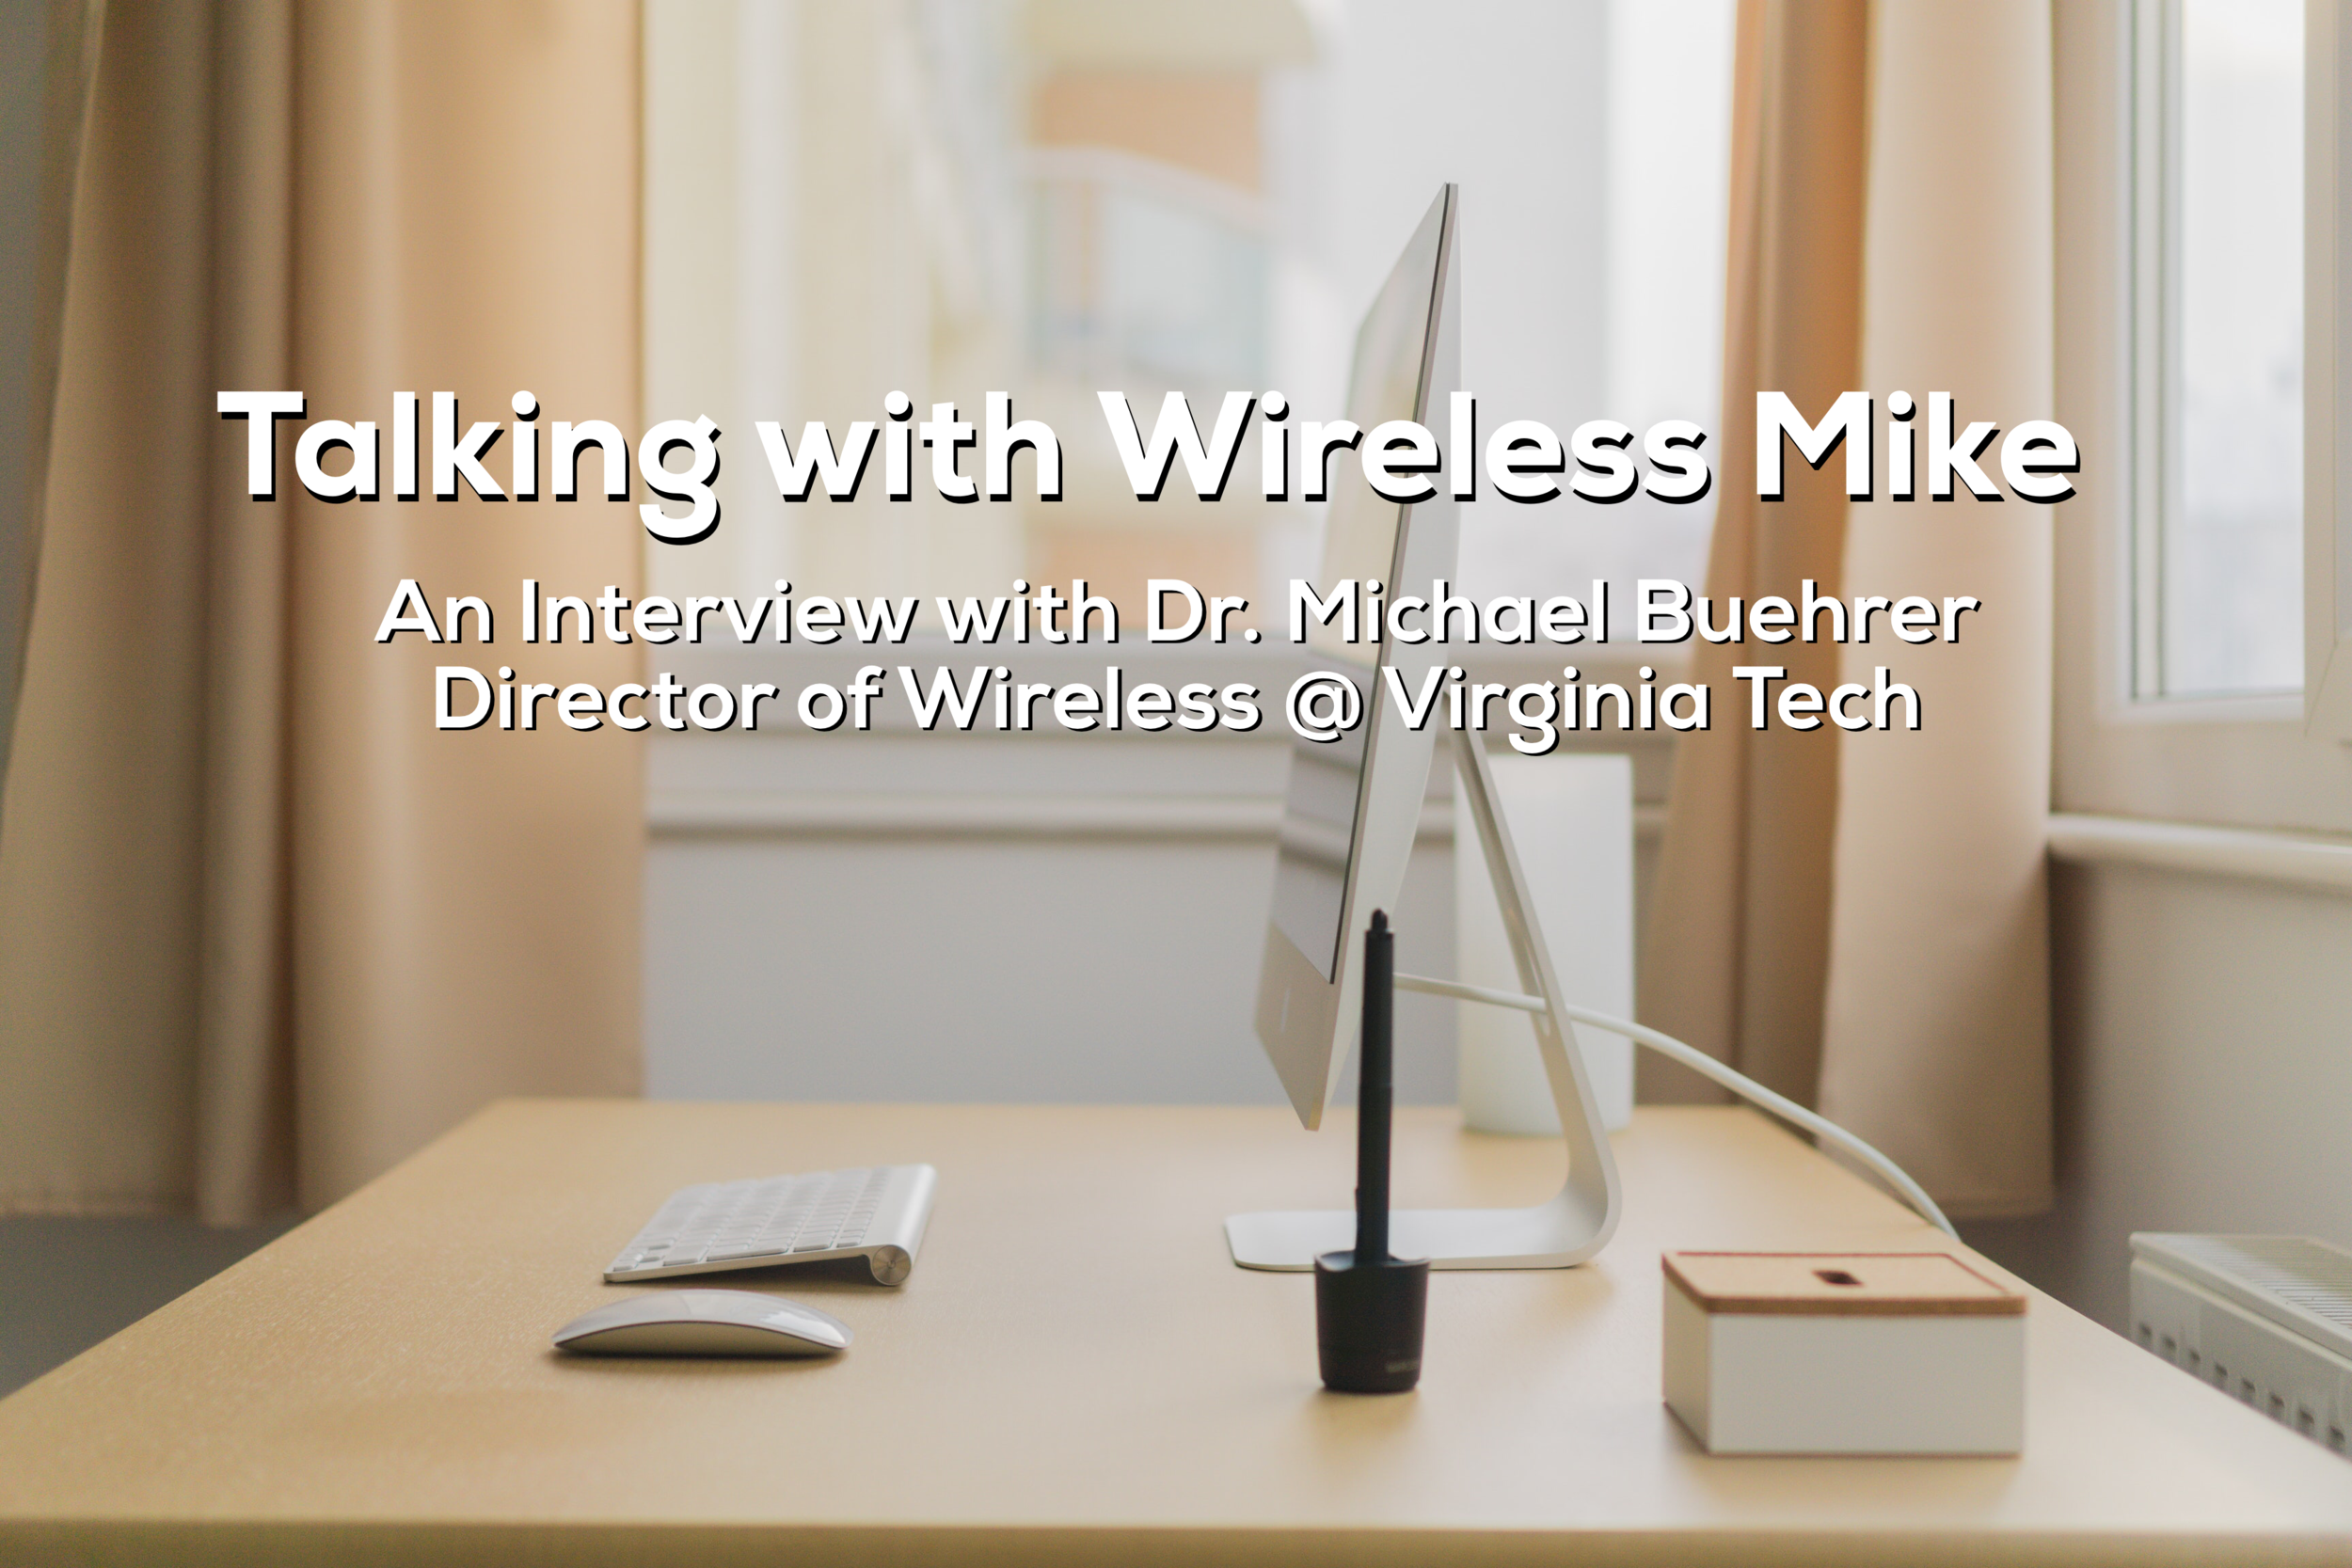 Reid and Jesse interview Dr. R. Michael Buehrer for his thoughts on technology and faith